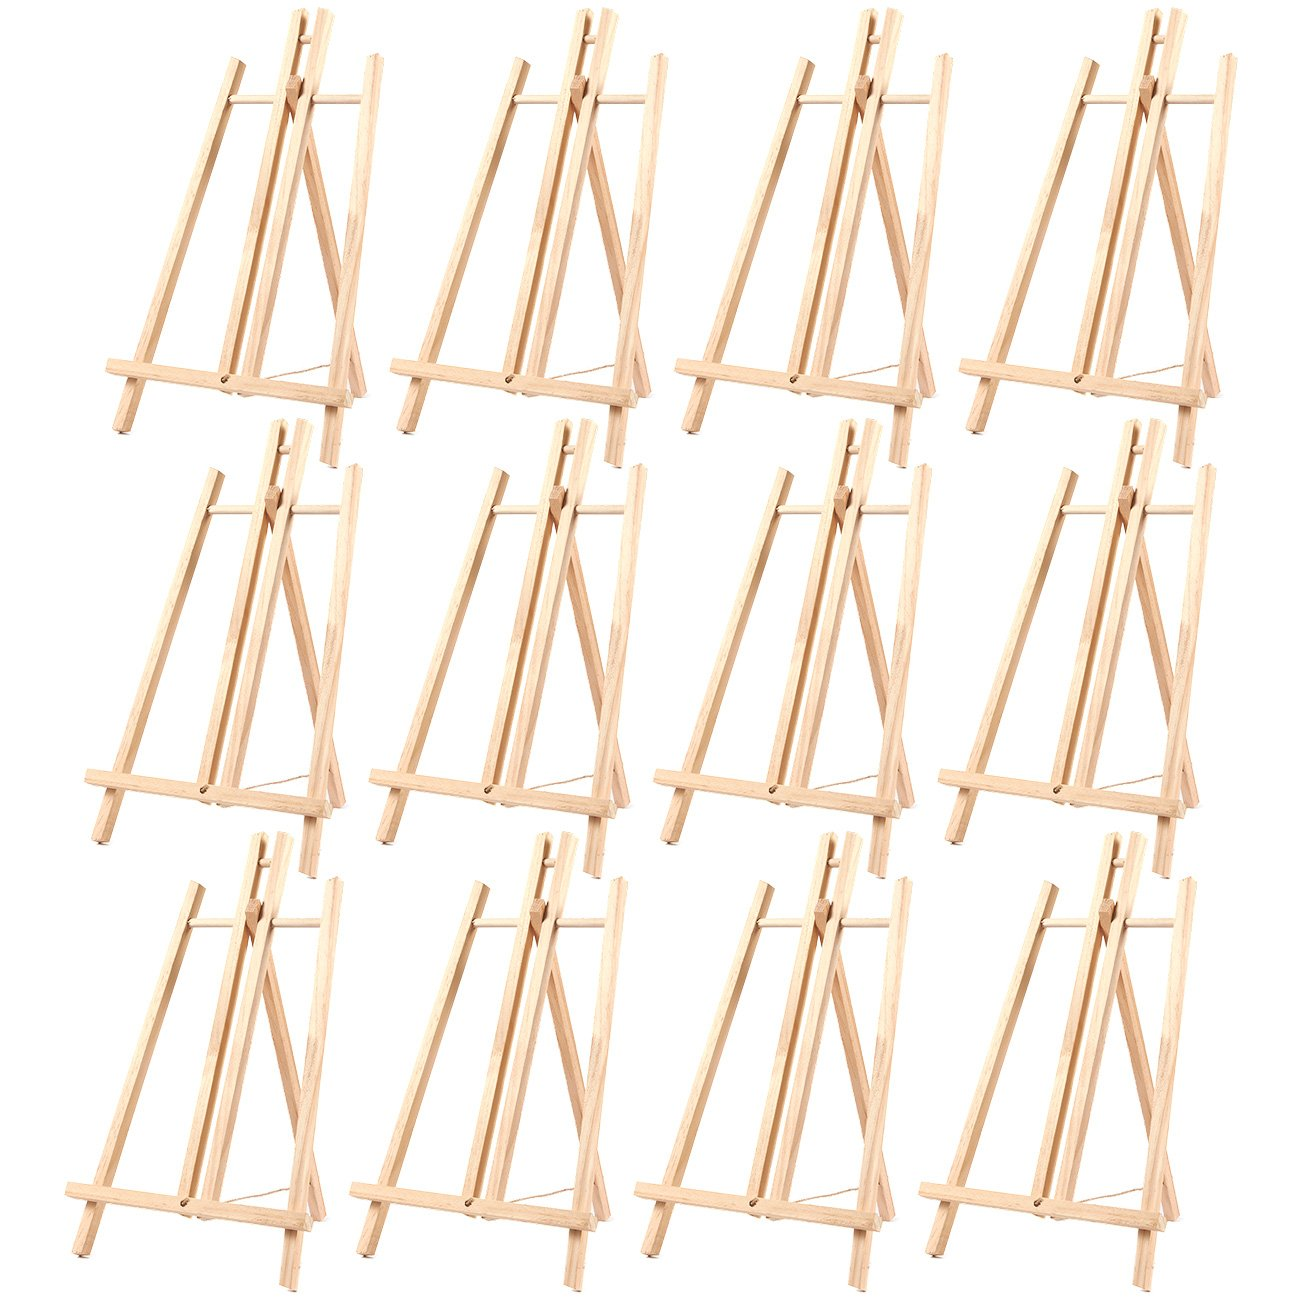 12-Pack of Tabletop Easels - Wood Easel, Mini Easels for Tabletop Painting, Standing Easel, Brown - 9 x 14.8 Inches by Juvale